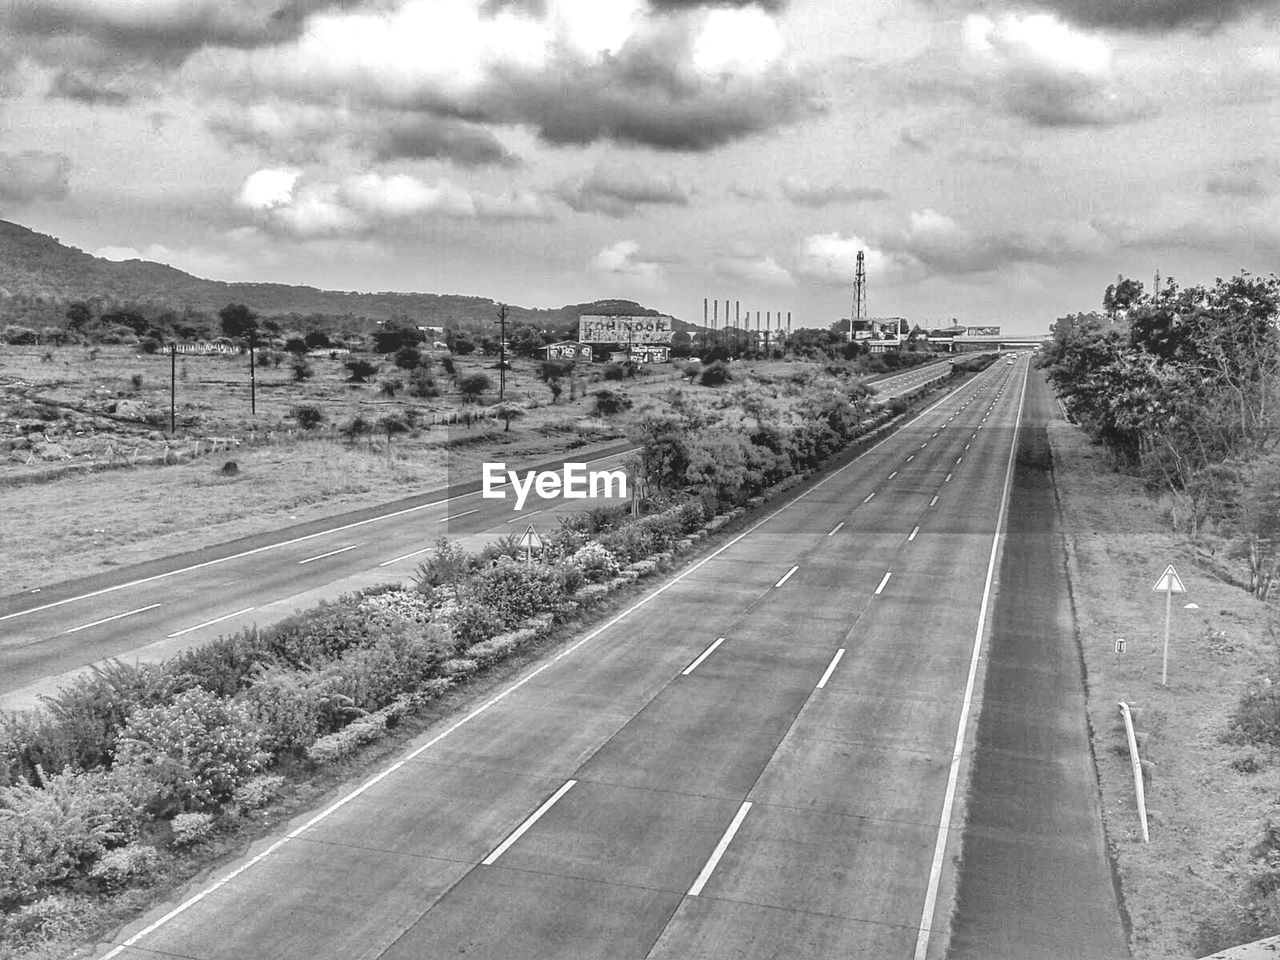 road, transportation, sky, road marking, cloud - sky, outdoors, day, no people, built structure, land vehicle, tree, architecture, nature, building exterior, city